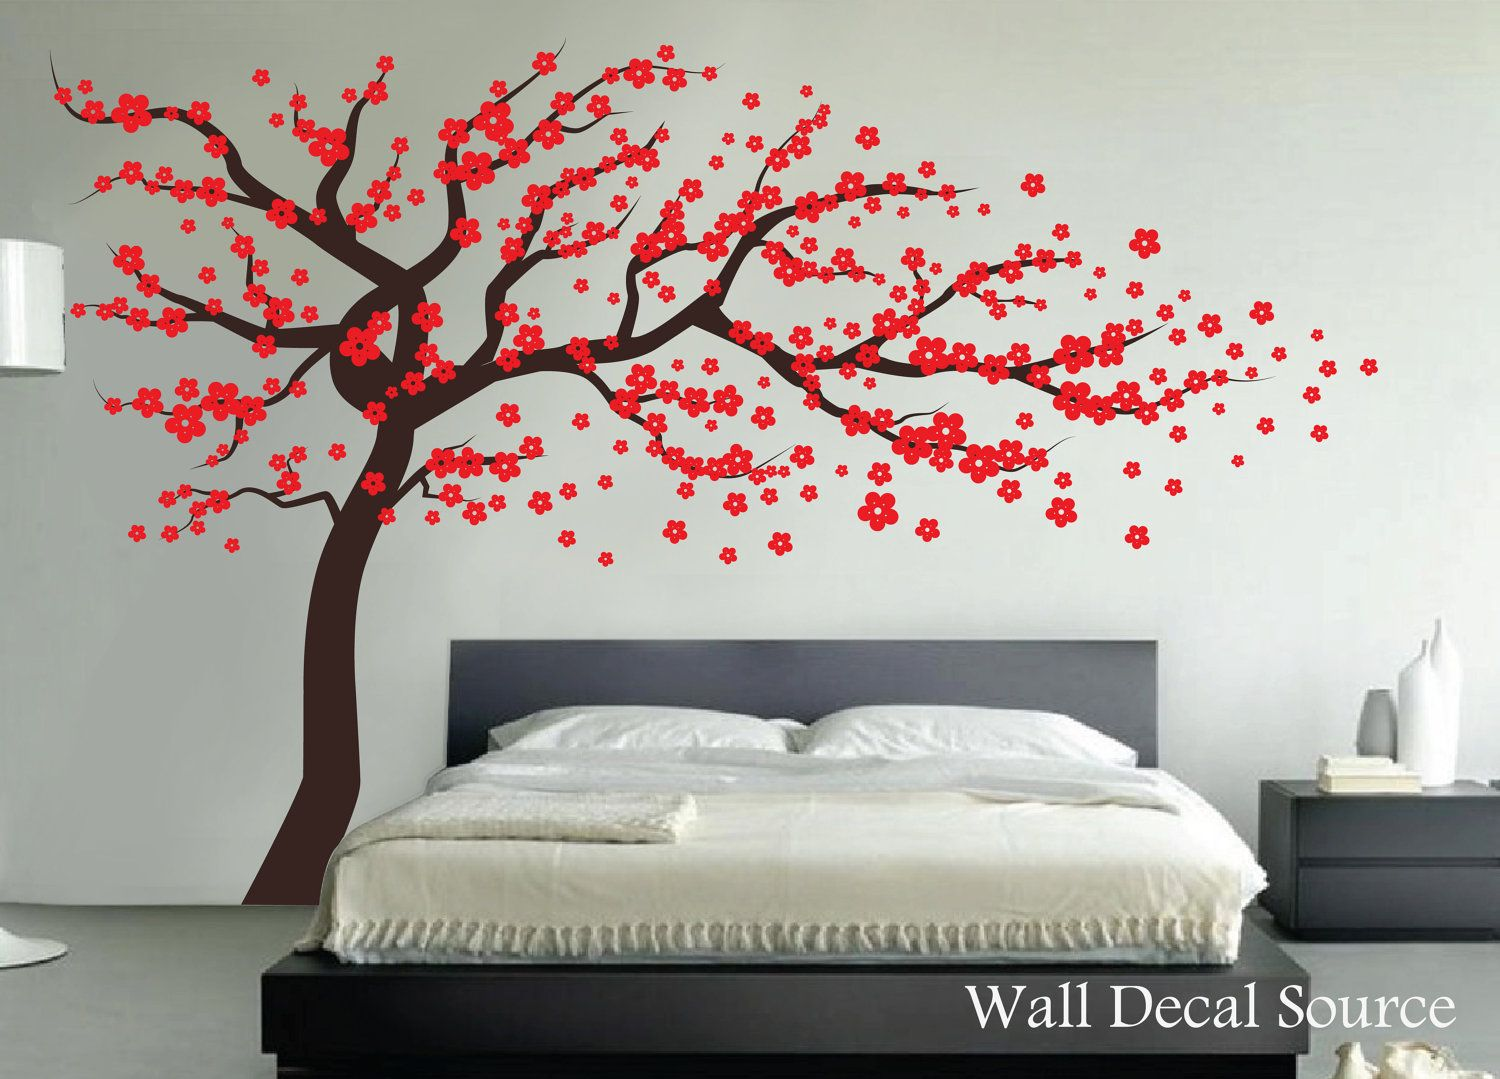 Best Wall Murals Images On Pinterest Wall Murals Blossom - Custom vinyl wall decals flowers